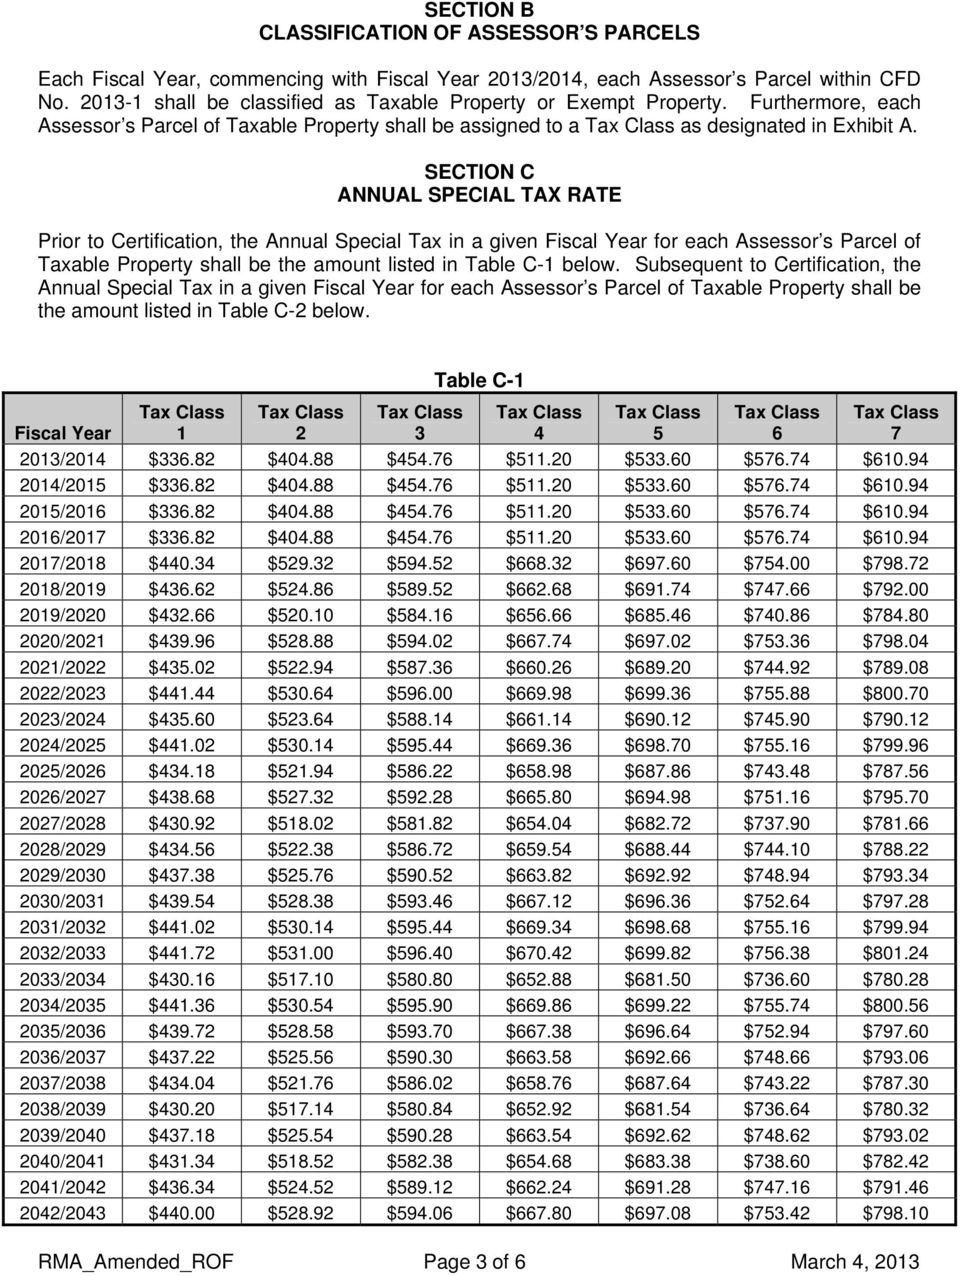 SECTION C ANNUAL SPECIAL TAX RATE Prior to Certification, the Annual Special Tax in a given Fiscal Year for each Assessor s Parcel of Taxable Property shall be the amount listed in Table C-1 below.